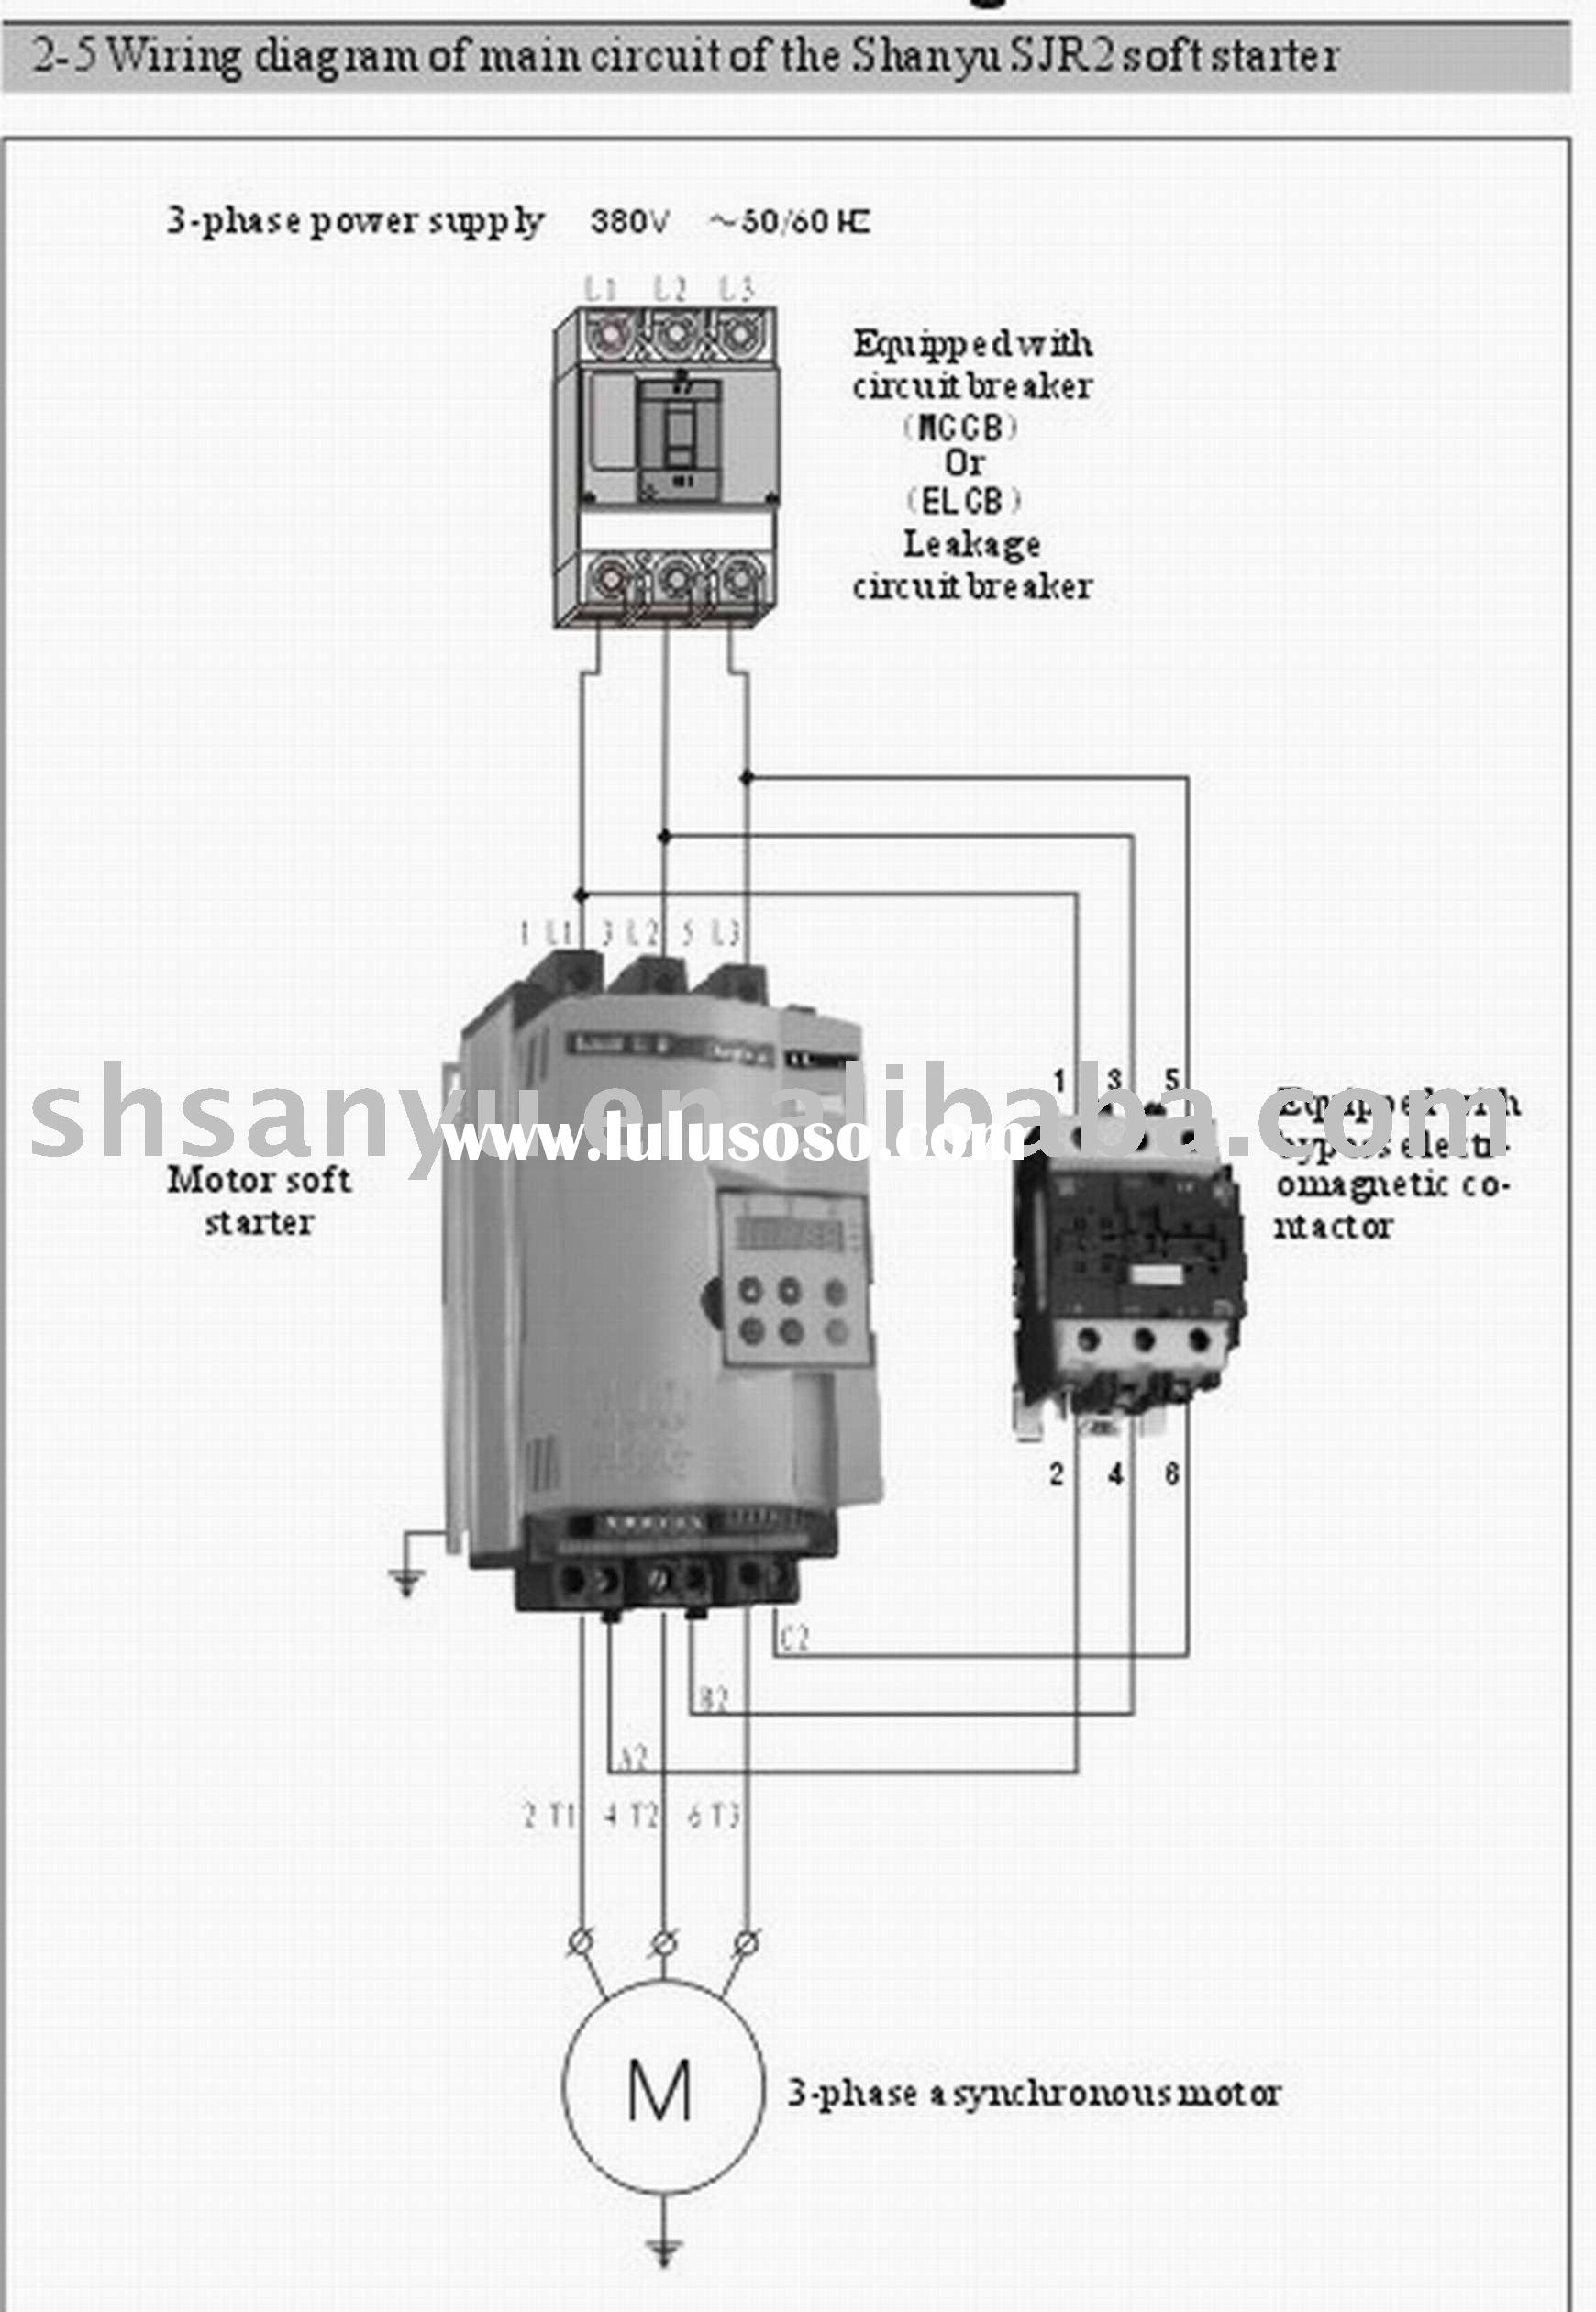 Emerson Wiring Diagram For Water Pumps | Wiring Diagram - Emerson Electric Motors Wiring Diagram